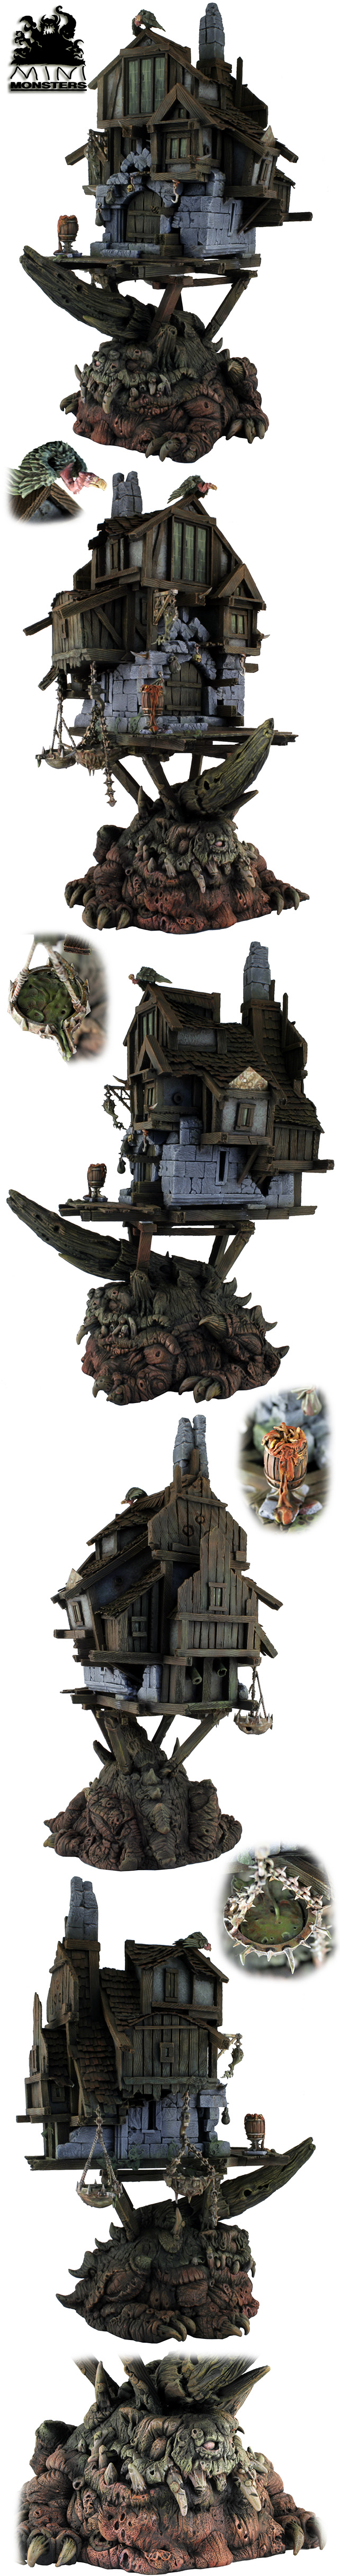 Chaos Nurgle Sorcerer House on the Giant Toad